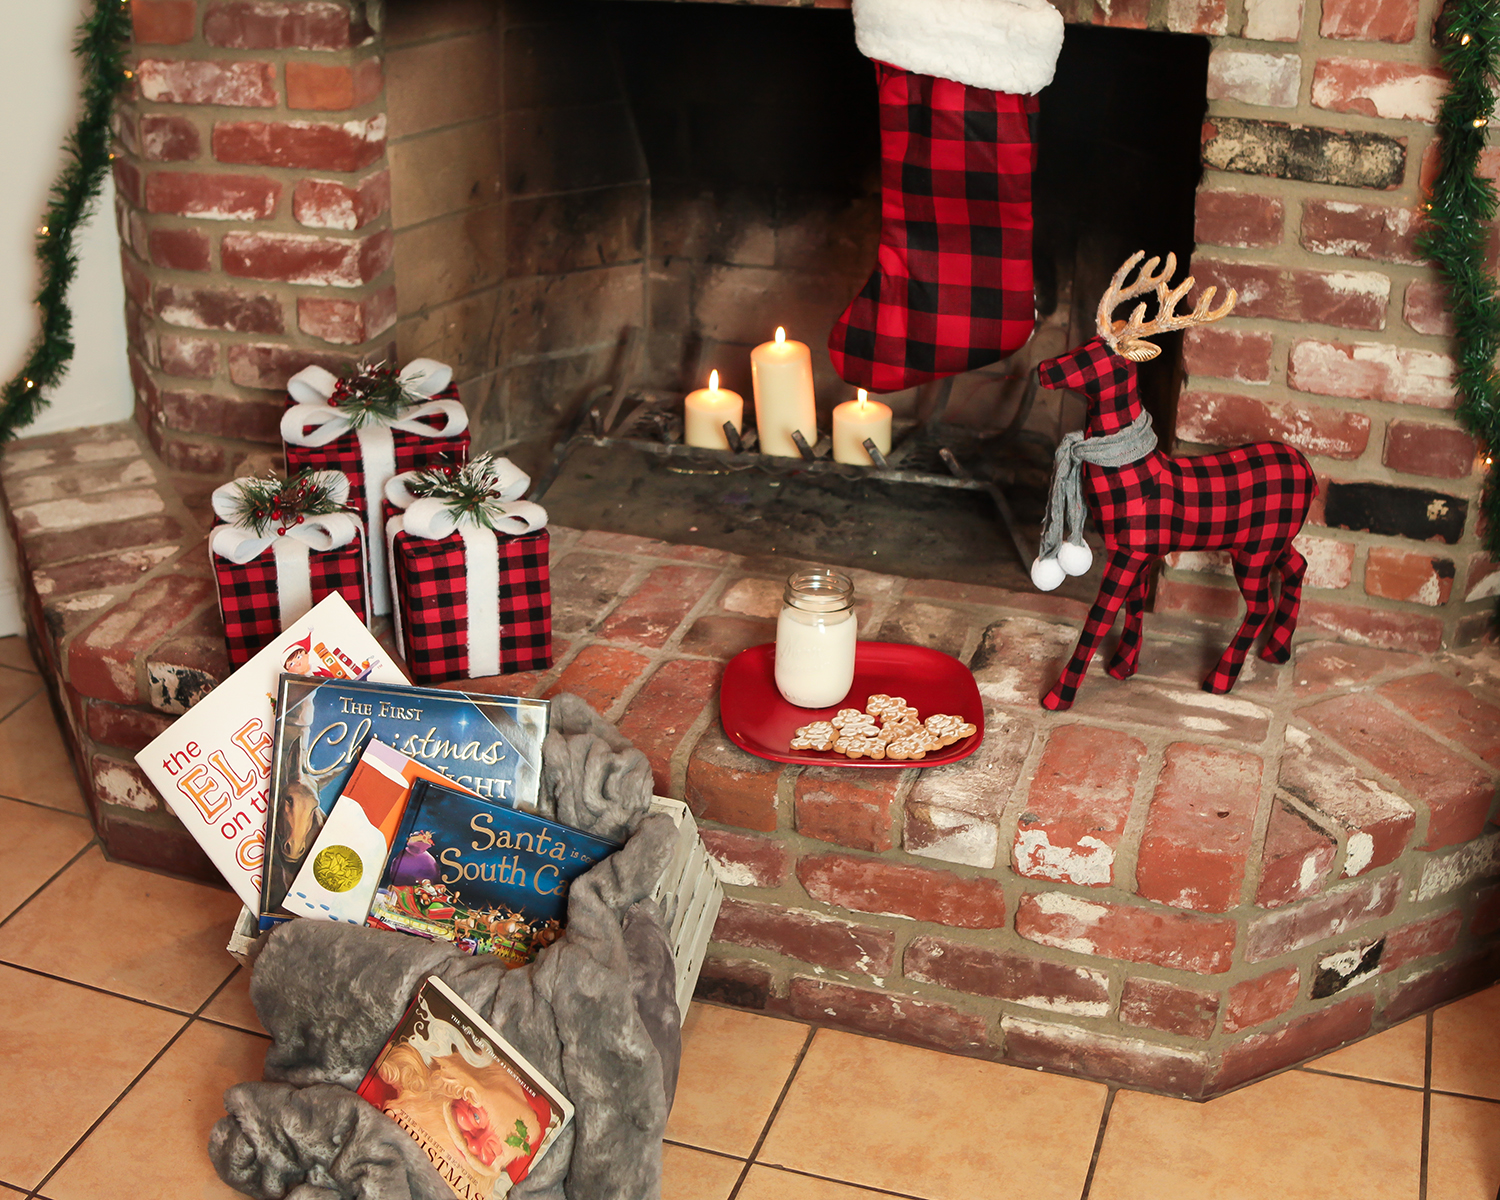 Christmas Fireplace: I love these pops of buffalo plaid and that furry blanket!